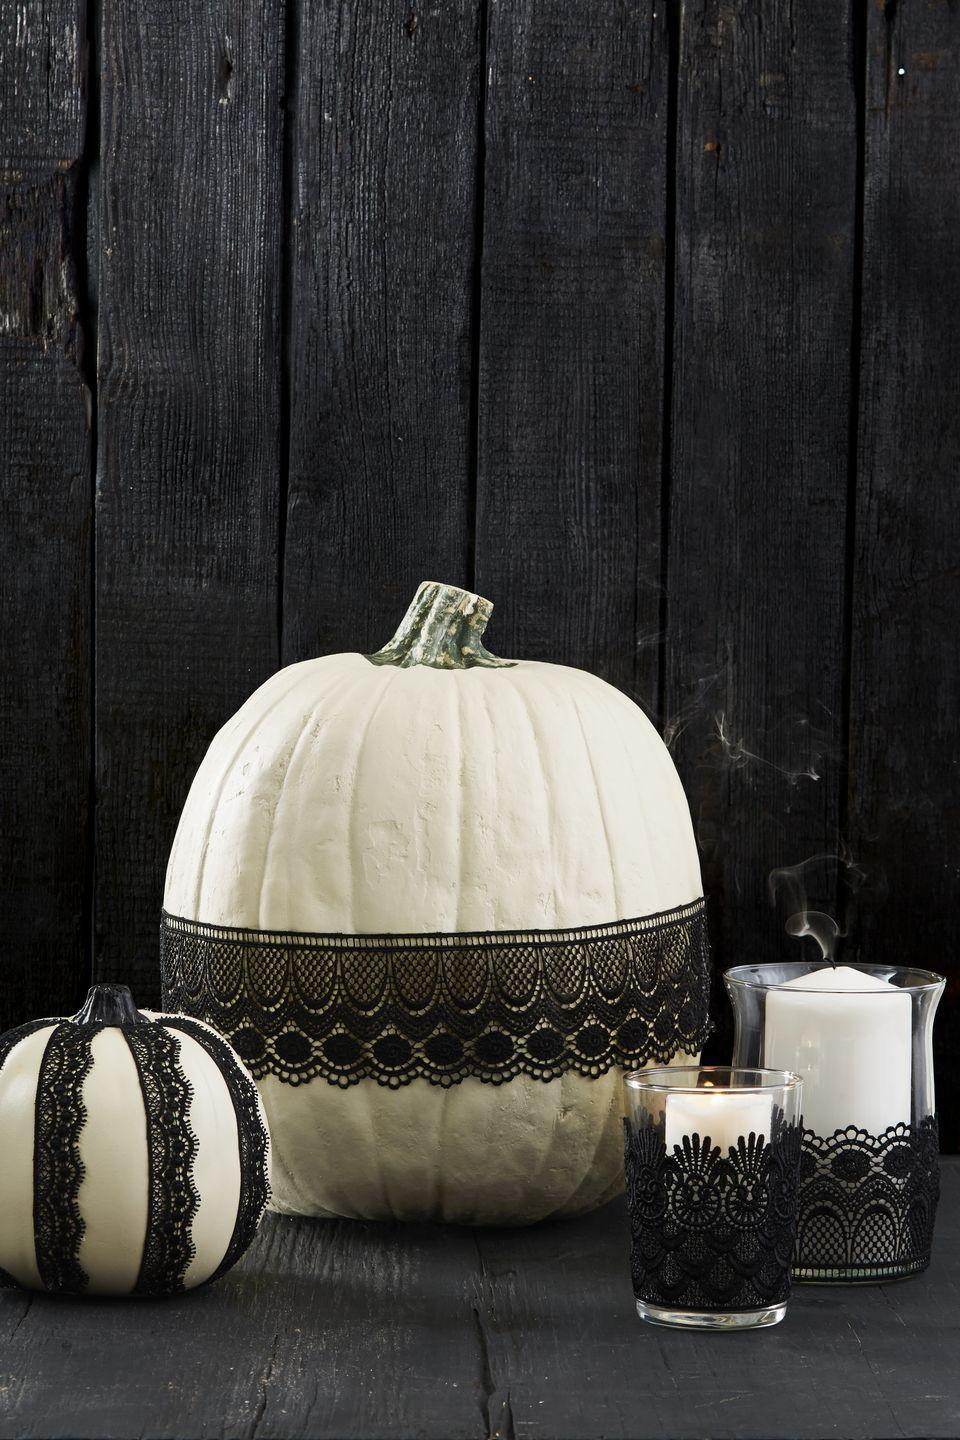 """<p>Choose ribbon or lace, then attach to pumpkins, candle holders, or even wine glasses with a few swipes of <a href=""""https://www.amazon.com/Mod-Podge-Waterbase-16-Ounce-CS11302/dp/B001IKES5O?tag=syn-yahoo-20&ascsubtag=%5Bartid%7C10055.g.1714%5Bsrc%7Cyahoo-us"""" rel=""""nofollow noopener"""" target=""""_blank"""" data-ylk=""""slk:Mod Podge"""" class=""""link rapid-noclick-resp"""">Mod Podge</a>. Let dry, then display. Done!</p><p><a class=""""link rapid-noclick-resp"""" href=""""https://www.amazon.com/ATRibbons-Delicate-Eyelash-Decoration-Ornament/dp/B07TLDTNP1/?tag=syn-yahoo-20&ascsubtag=%5Bartid%7C10055.g.1714%5Bsrc%7Cyahoo-us"""" rel=""""nofollow noopener"""" target=""""_blank"""" data-ylk=""""slk:SHOP LACE"""">SHOP LACE</a><br></p>"""